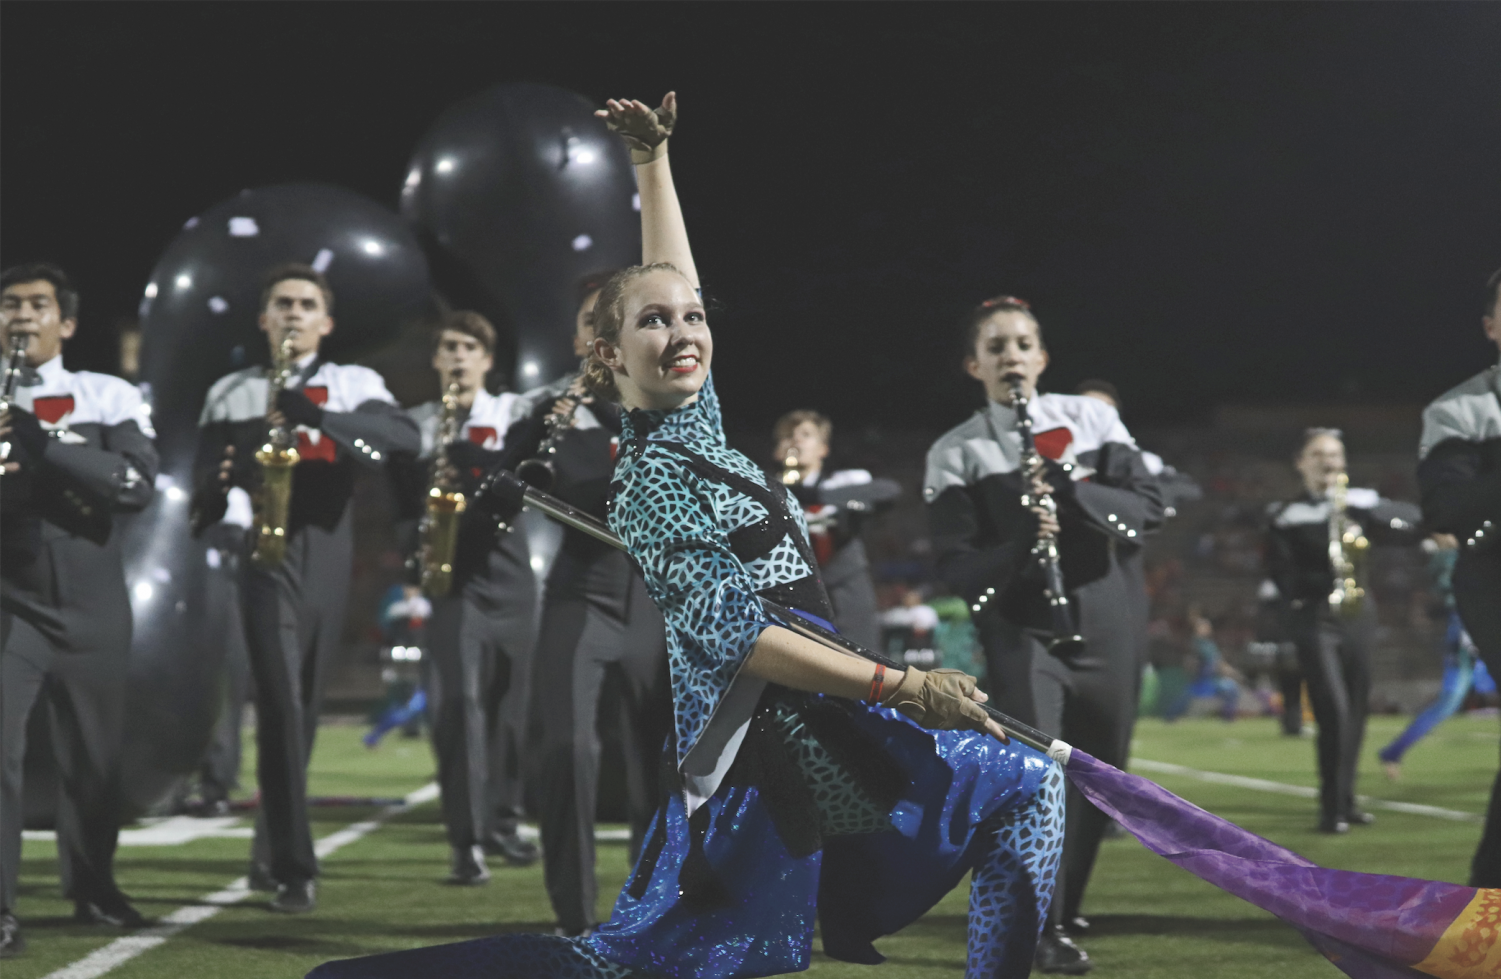 FLEXING ON THE FIELD: Sophomore Emma Taylor shows off her skills during a Bowie football game. Taylor and the girls are planning to travel to Beijing in May for Winter Guard International.